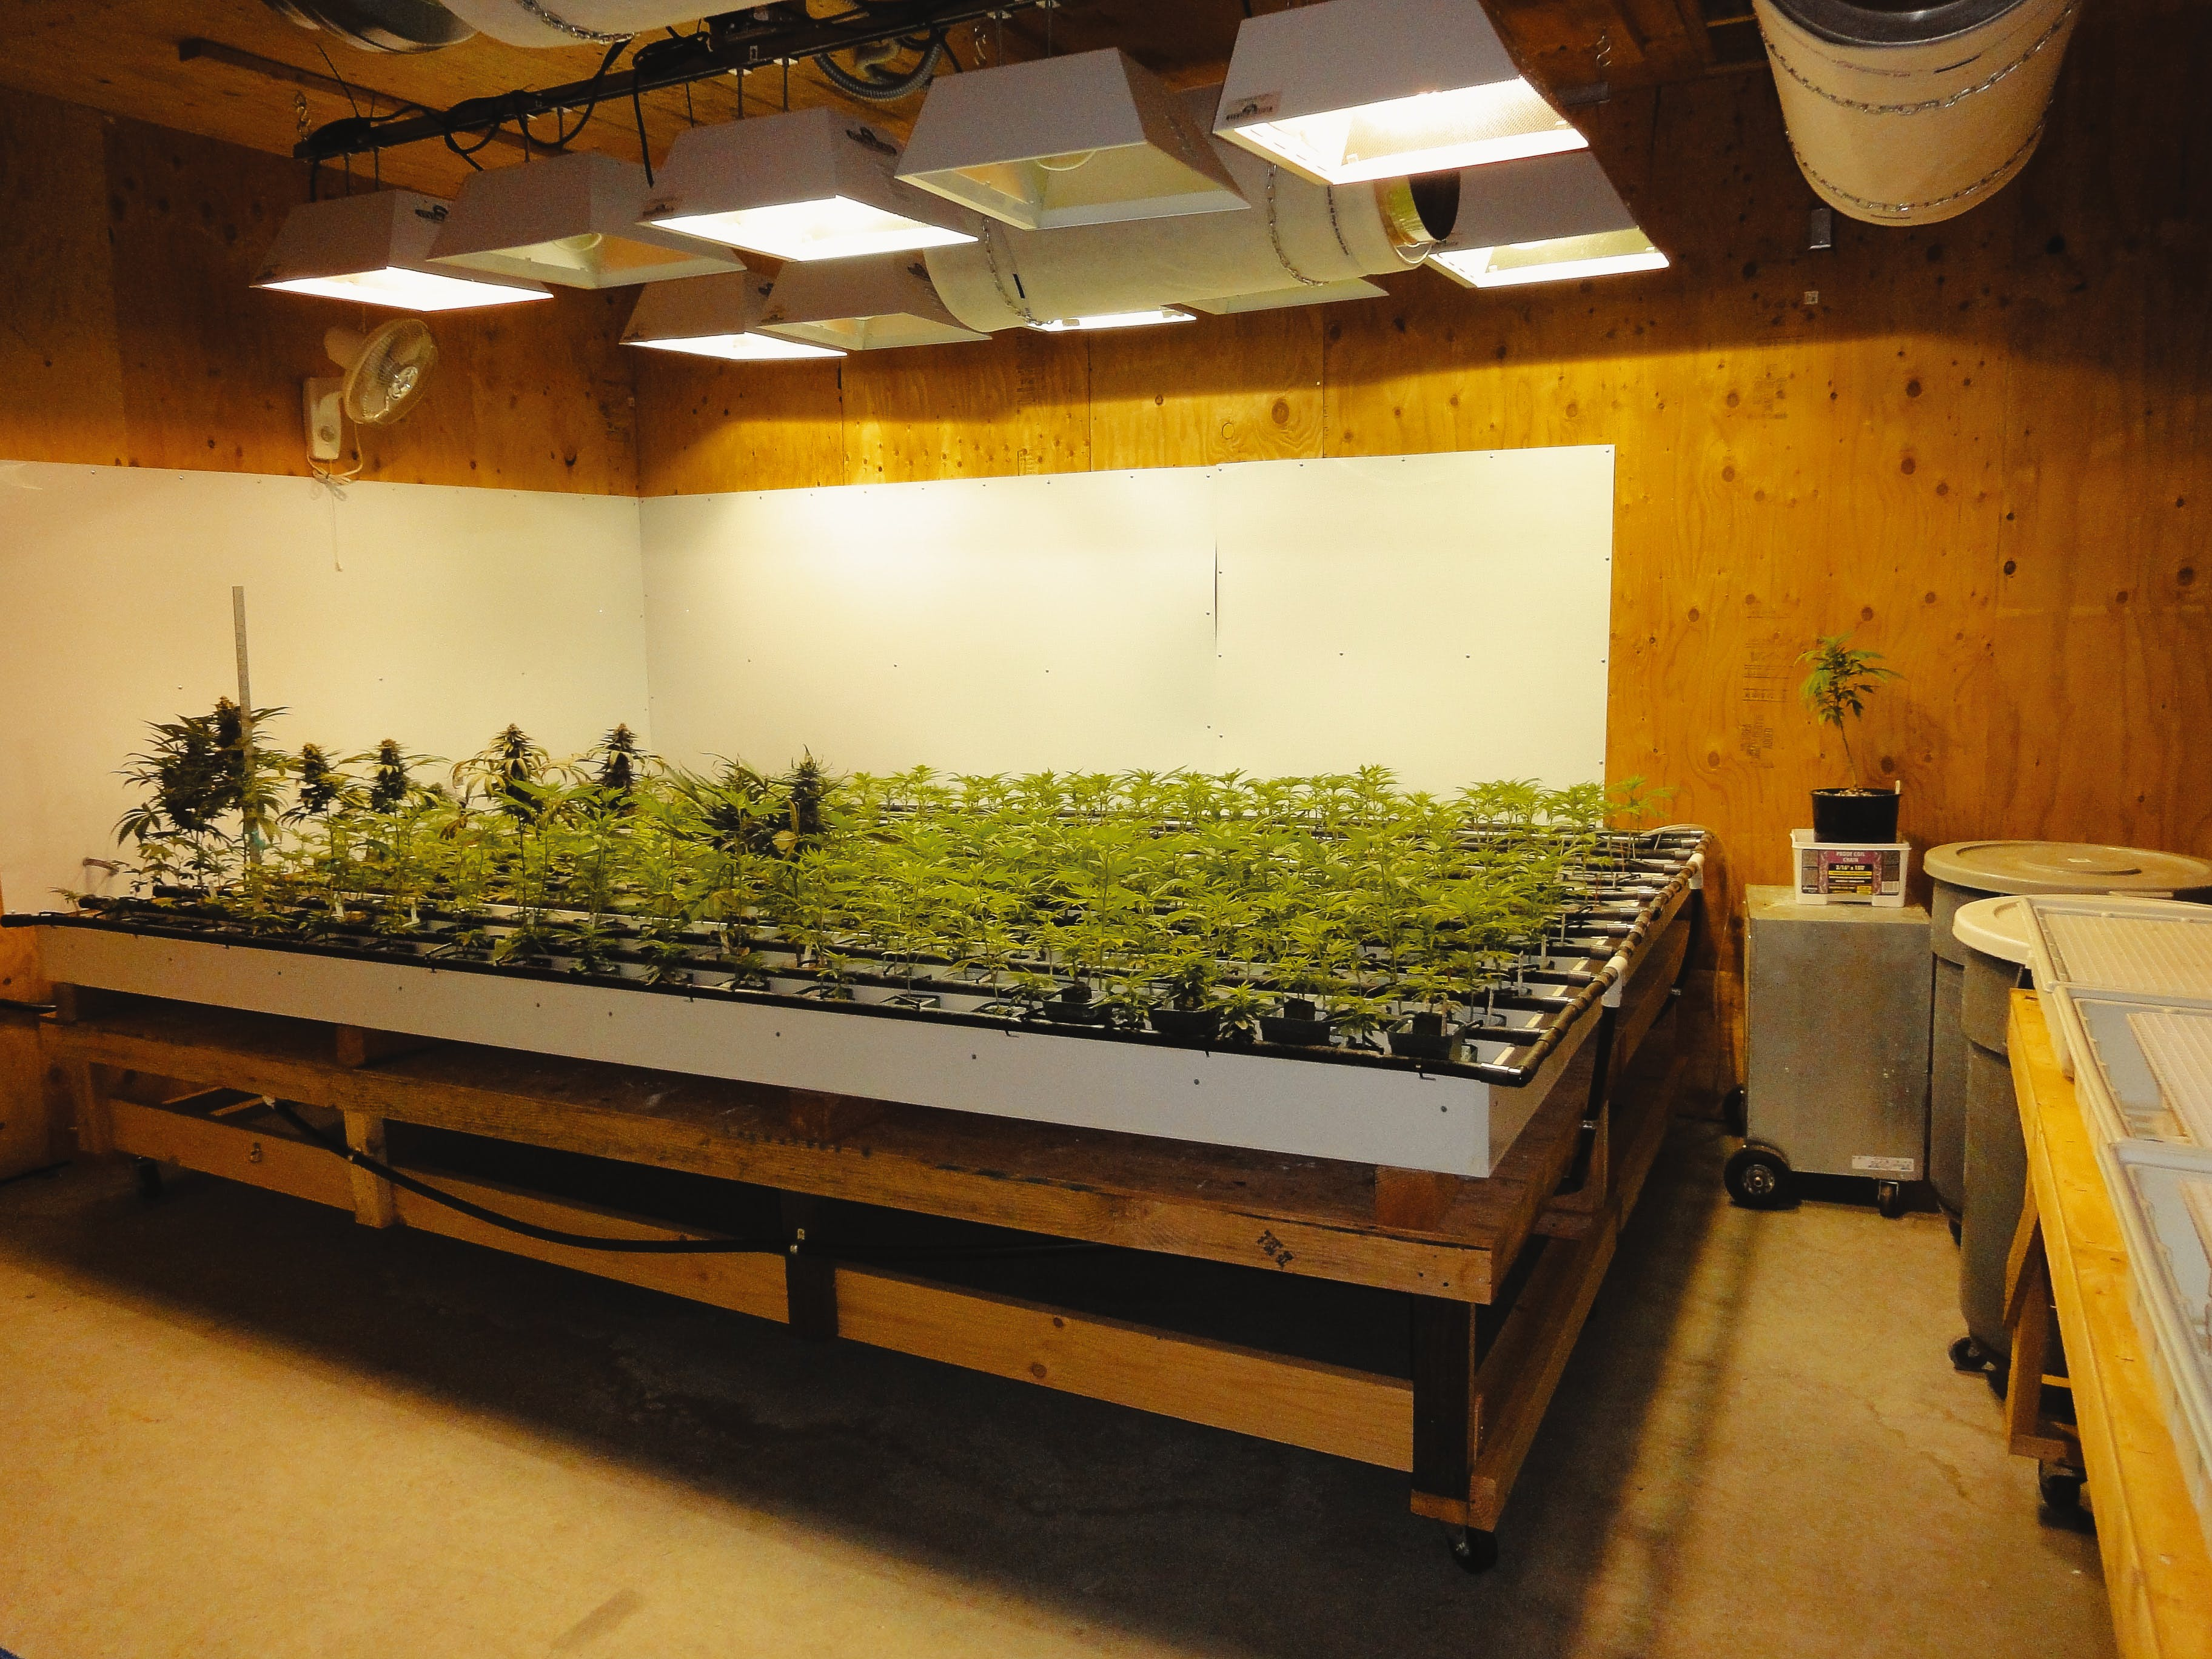 What is Hydroponic Weed The Pros and Cons of Hydroponics vs. Soil41 What is Hydroponic Weed? The Pros and Cons of Hydroponics vs. Soil